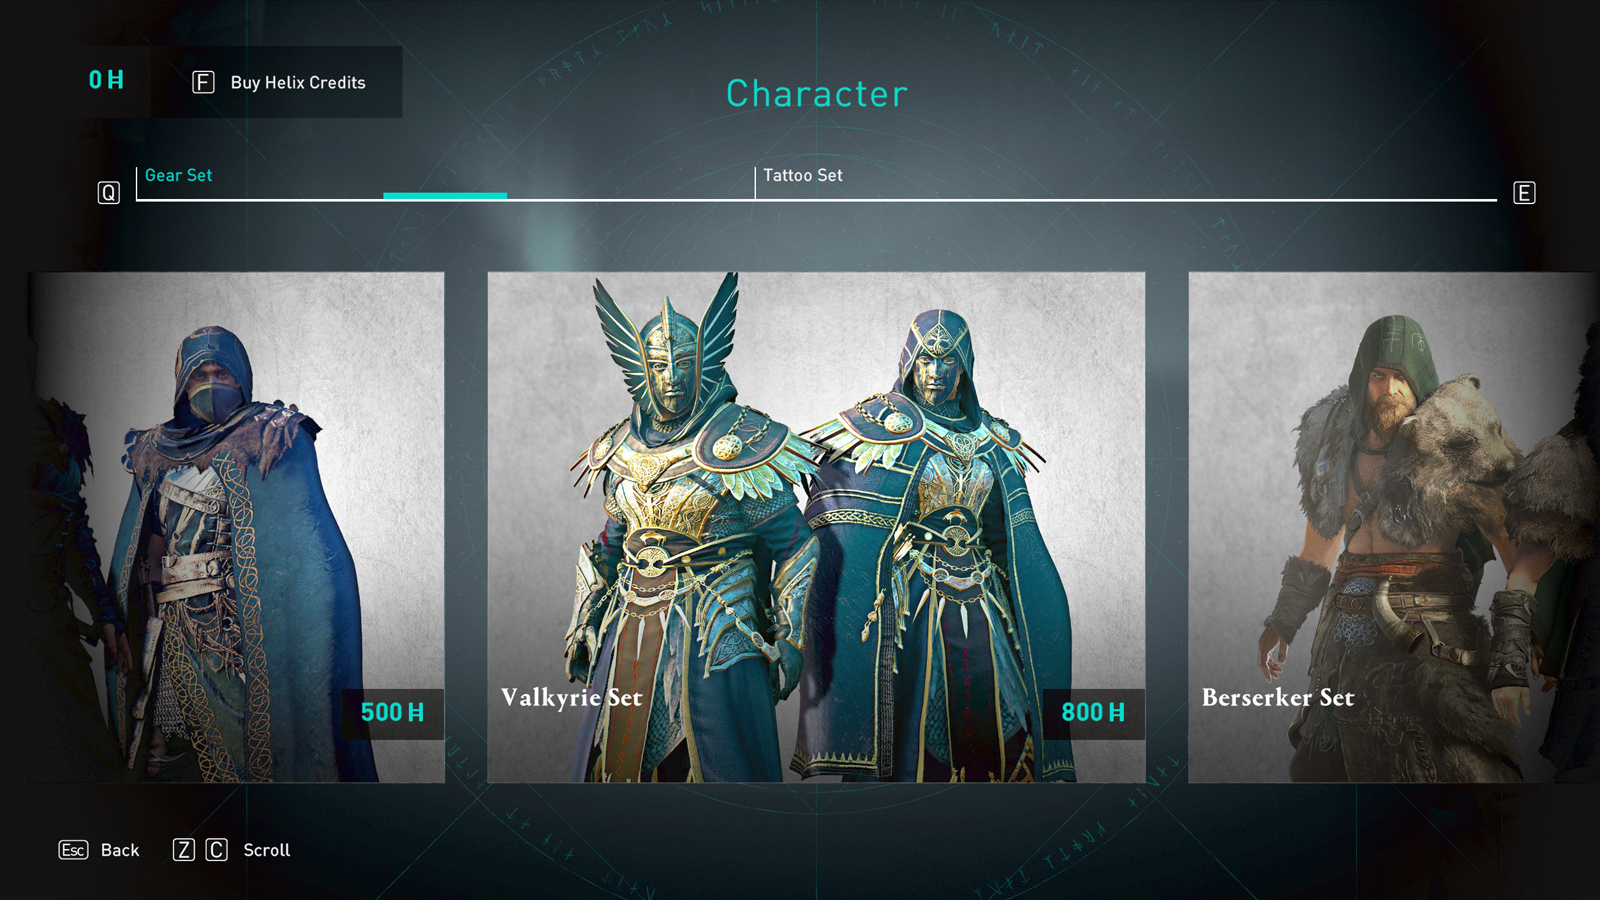 Valhalla Valkyrie set in the item store